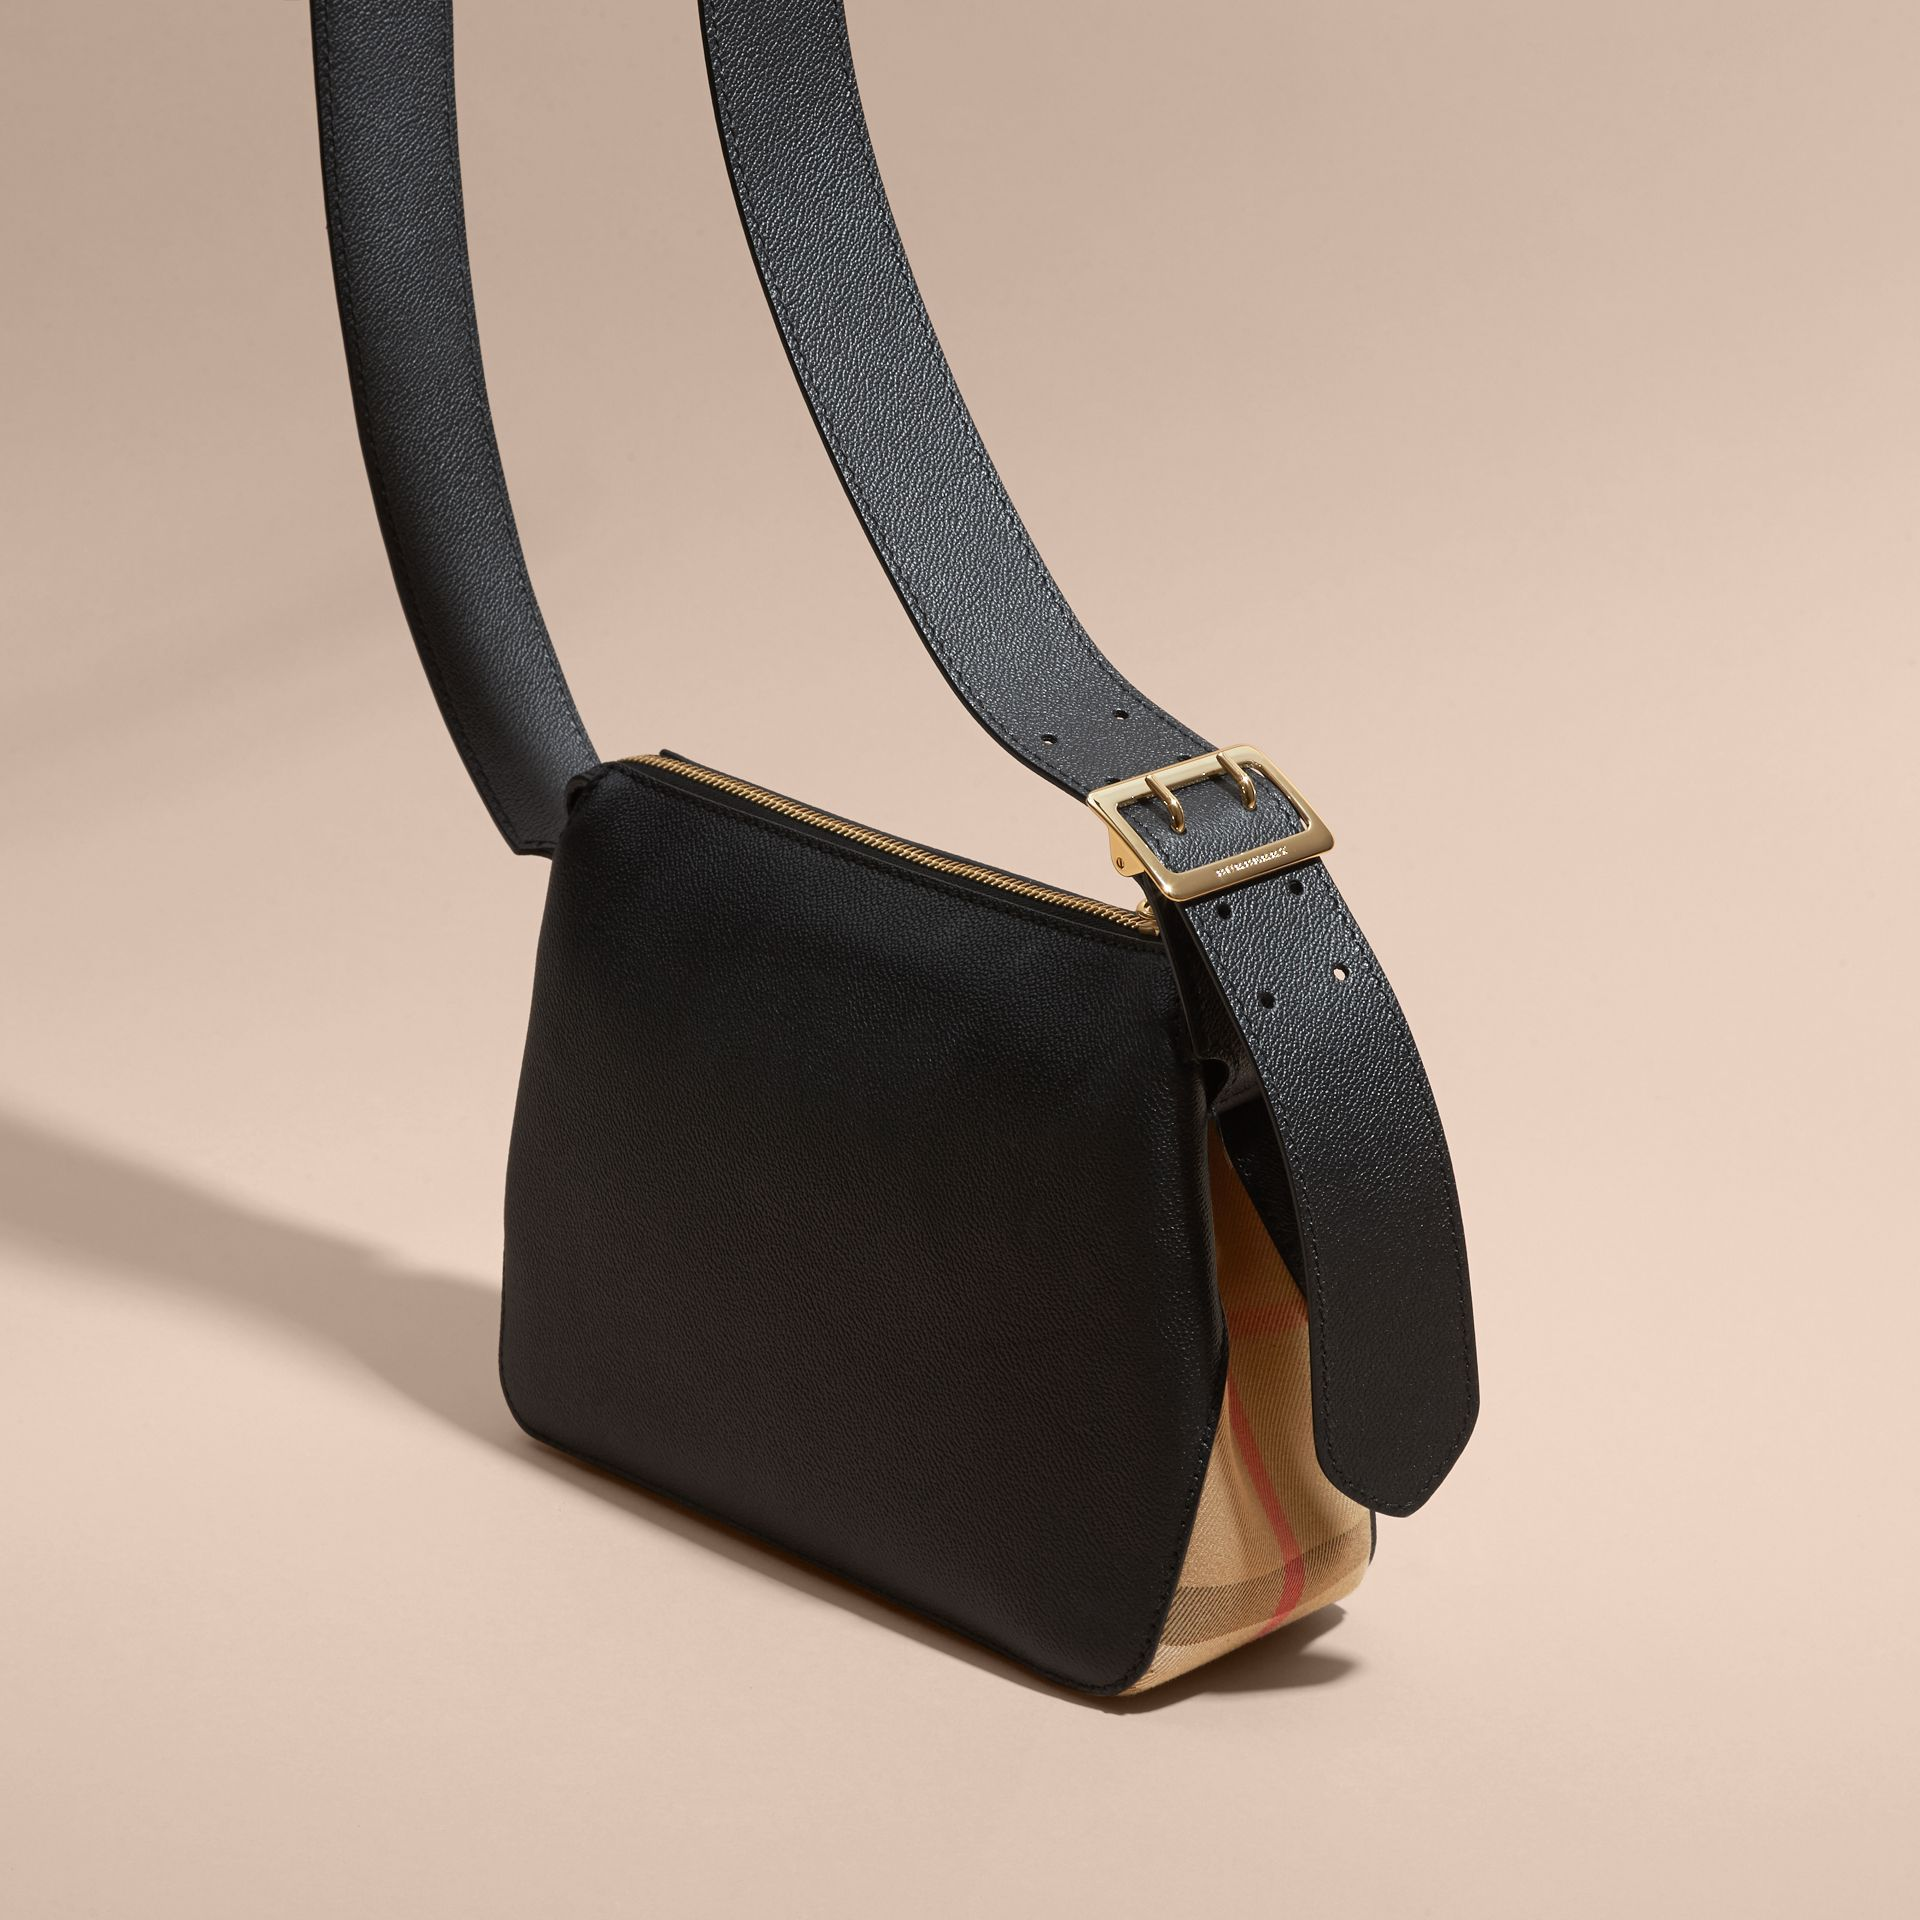 Buckle Detail Leather and House Check Crossbody Bag in Black - Women | Burberry - gallery image 4